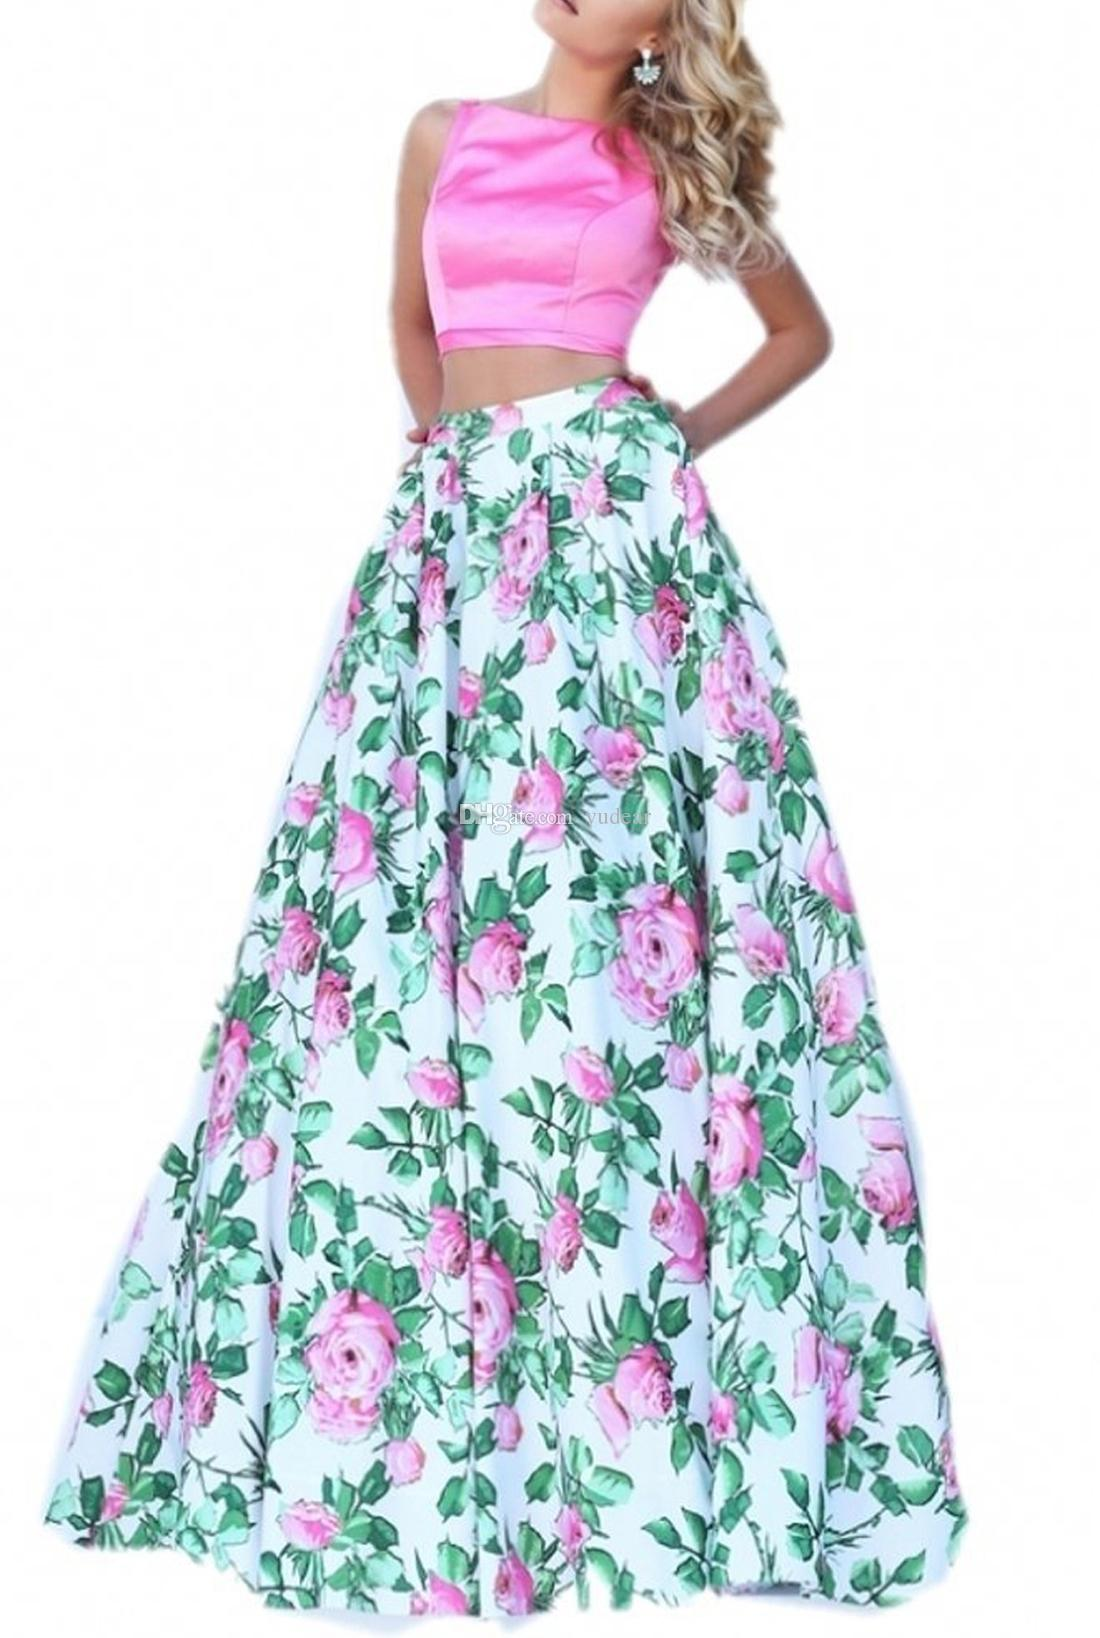 Elegant Bateau 2019 Women Prom Dresses Two Pieces Sleeveless Simple Satin Flower Print Skirts Evening Party Gowns Zipper Cheap Cocktail Gown